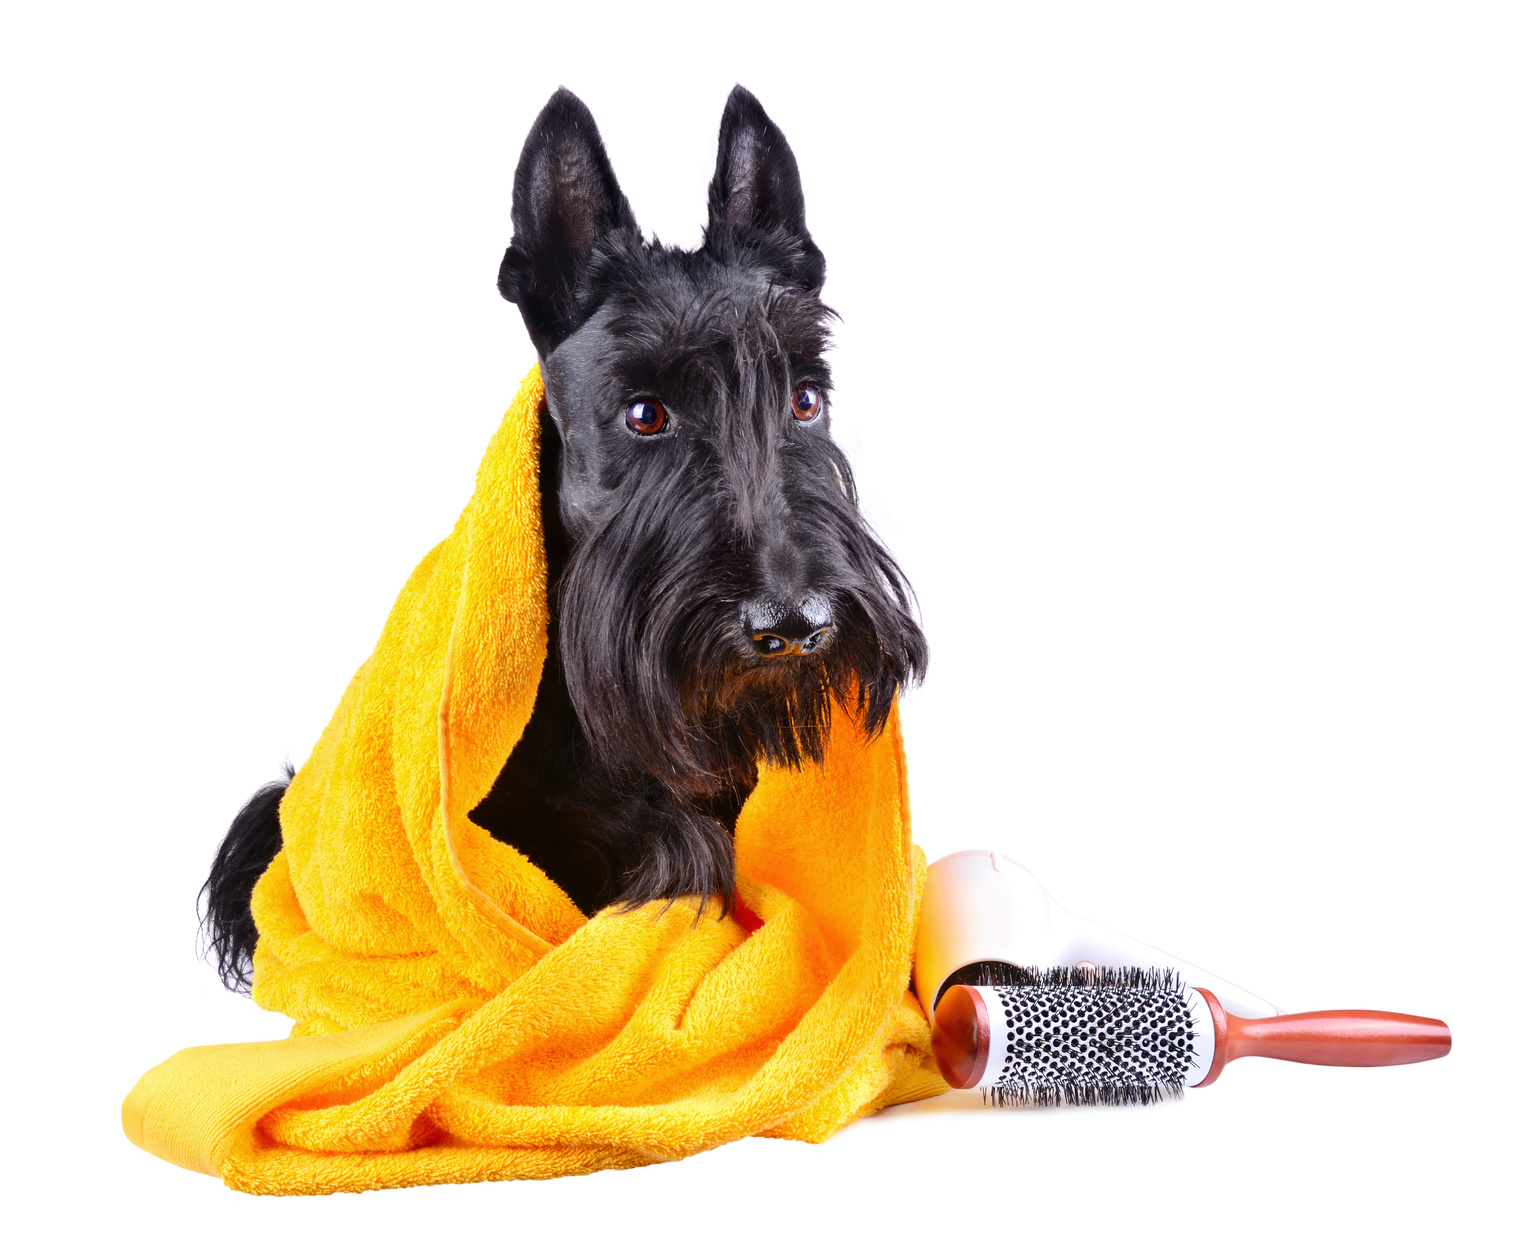 Scotty dog in yellow towel